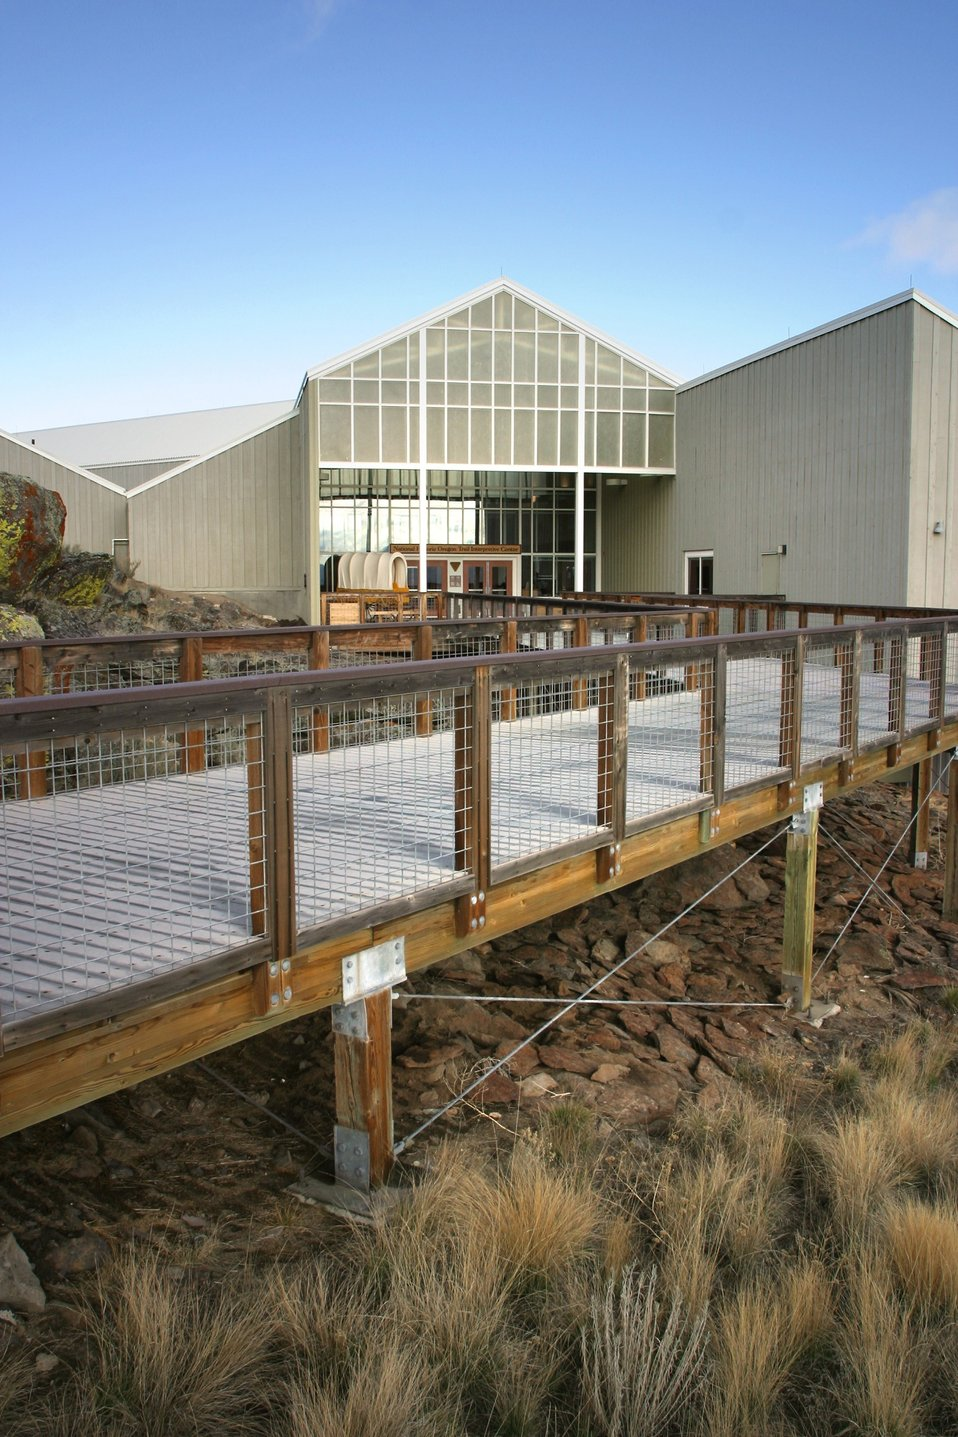 National Historic Oregon Trail Interpretive Center entrance.